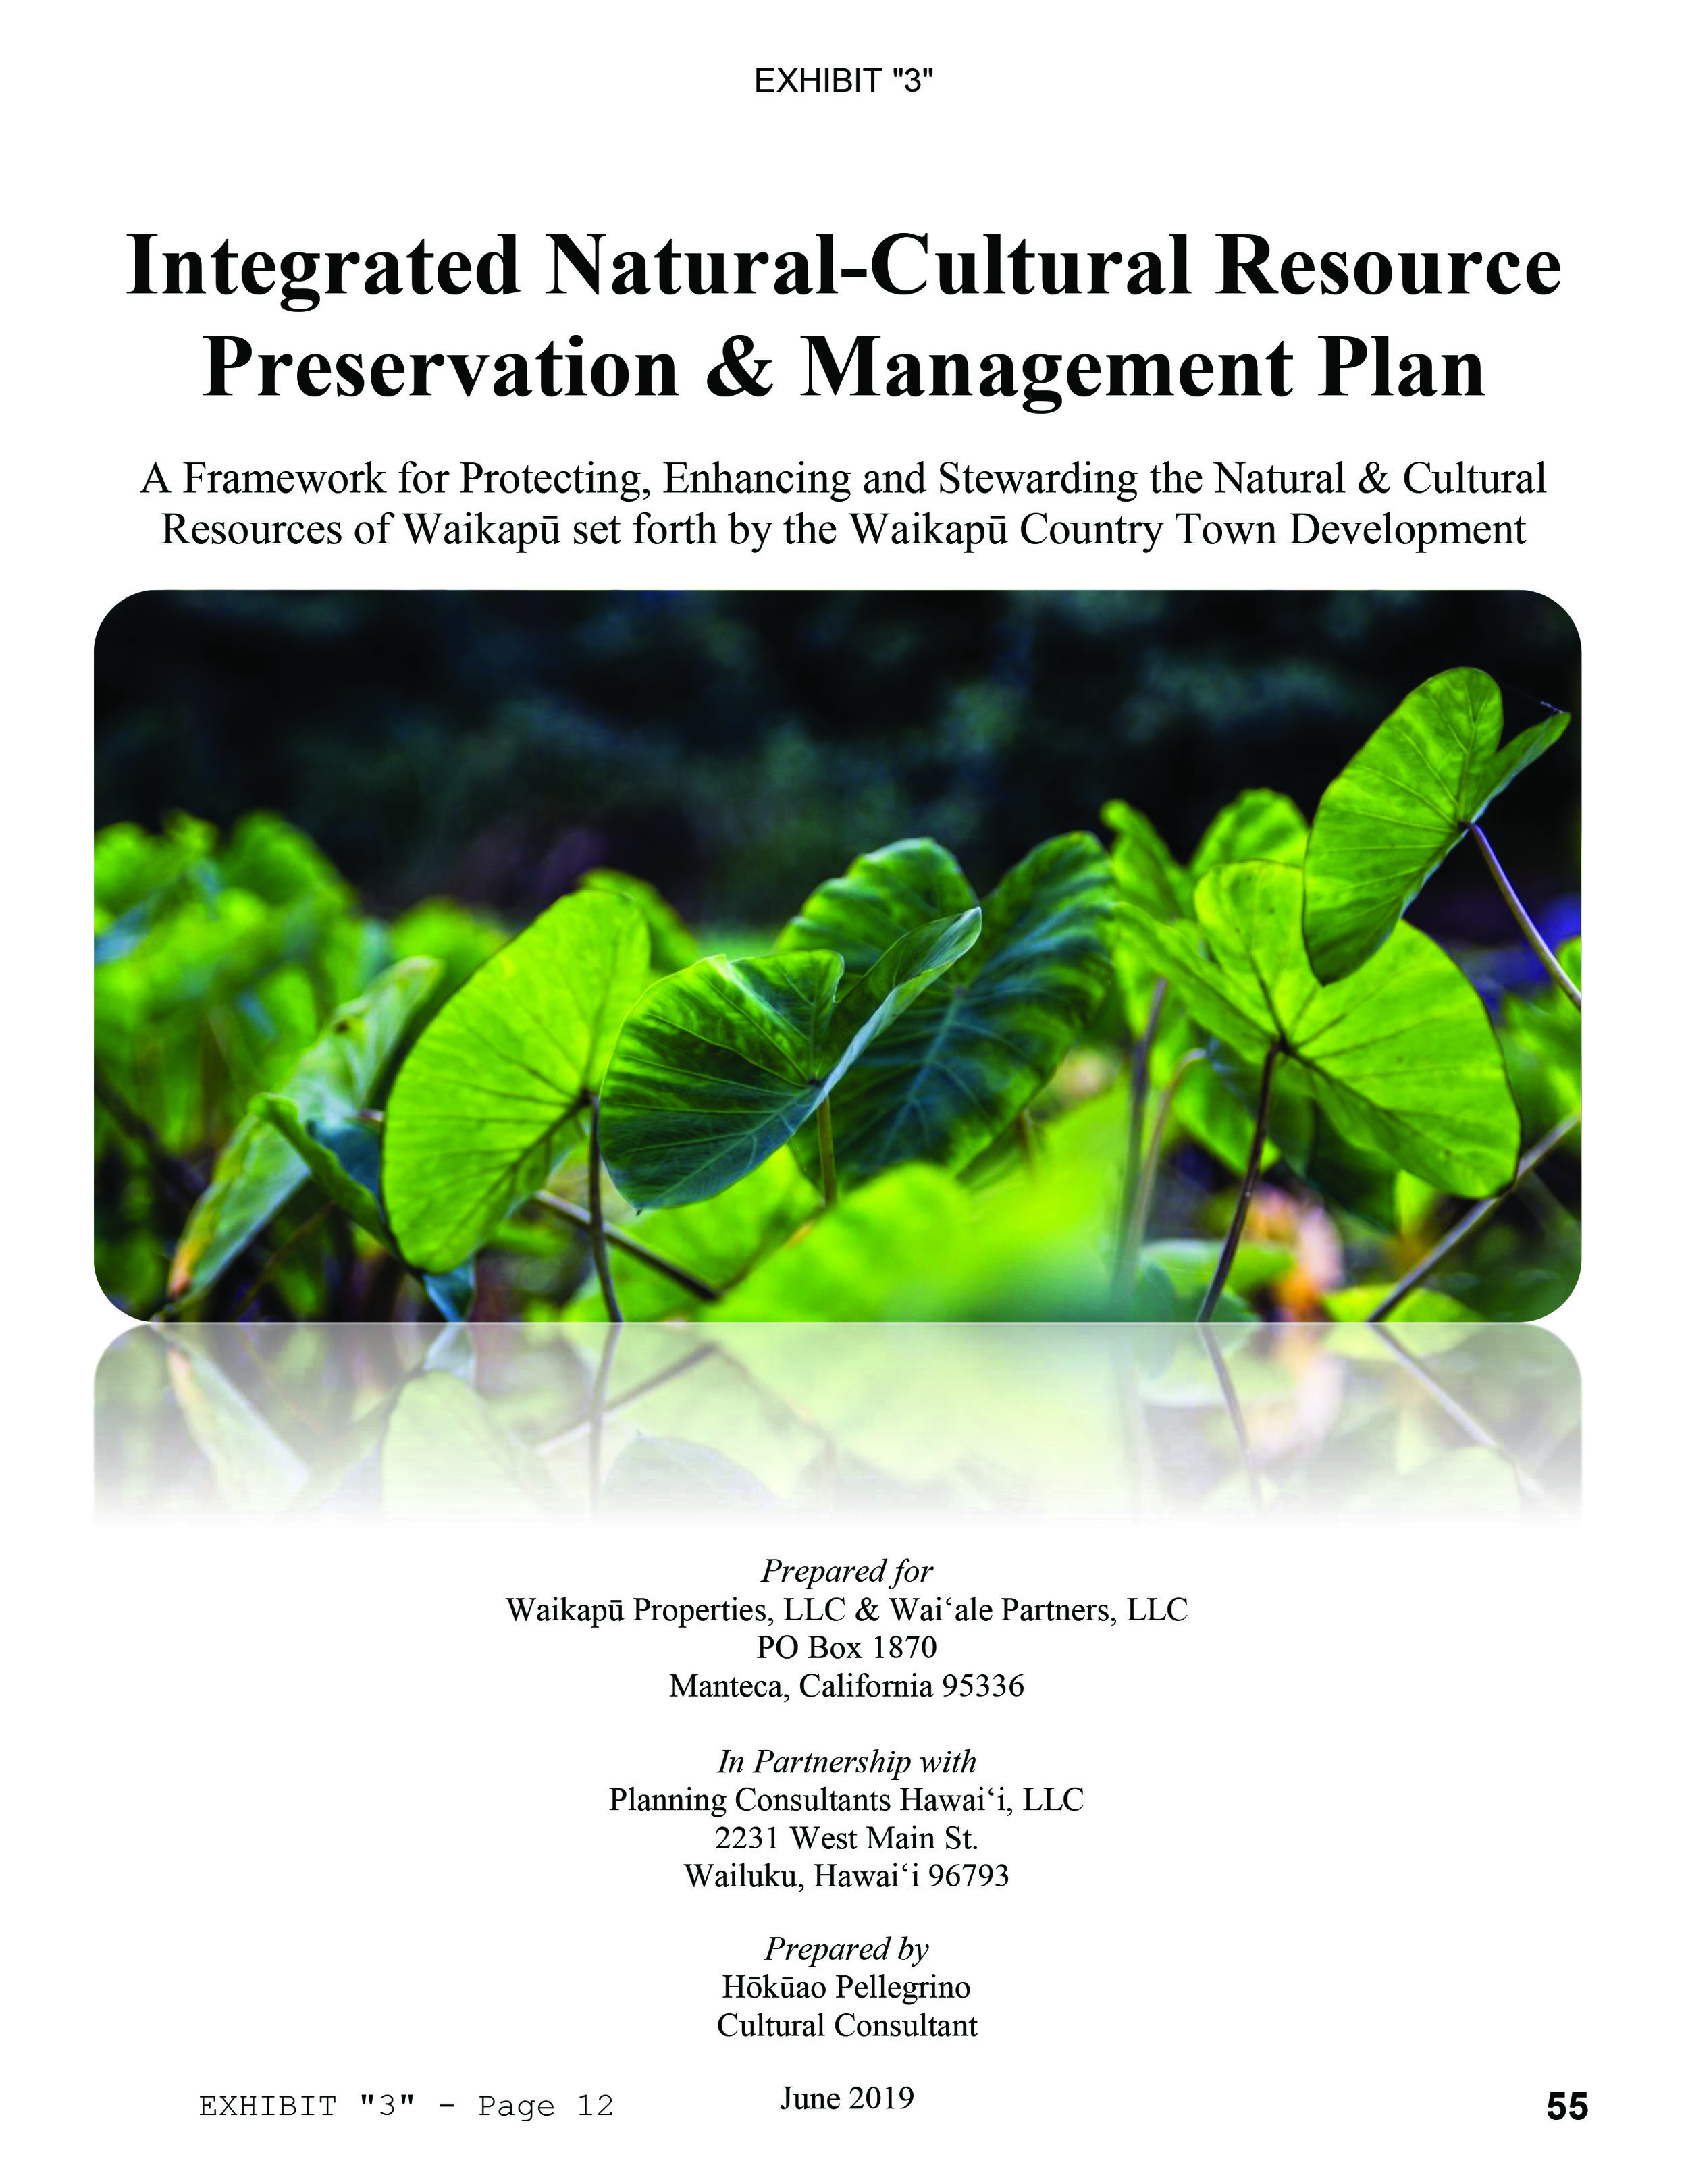 Integrated Natural-Cultural Resource Preservation & Management Plan - August 2019